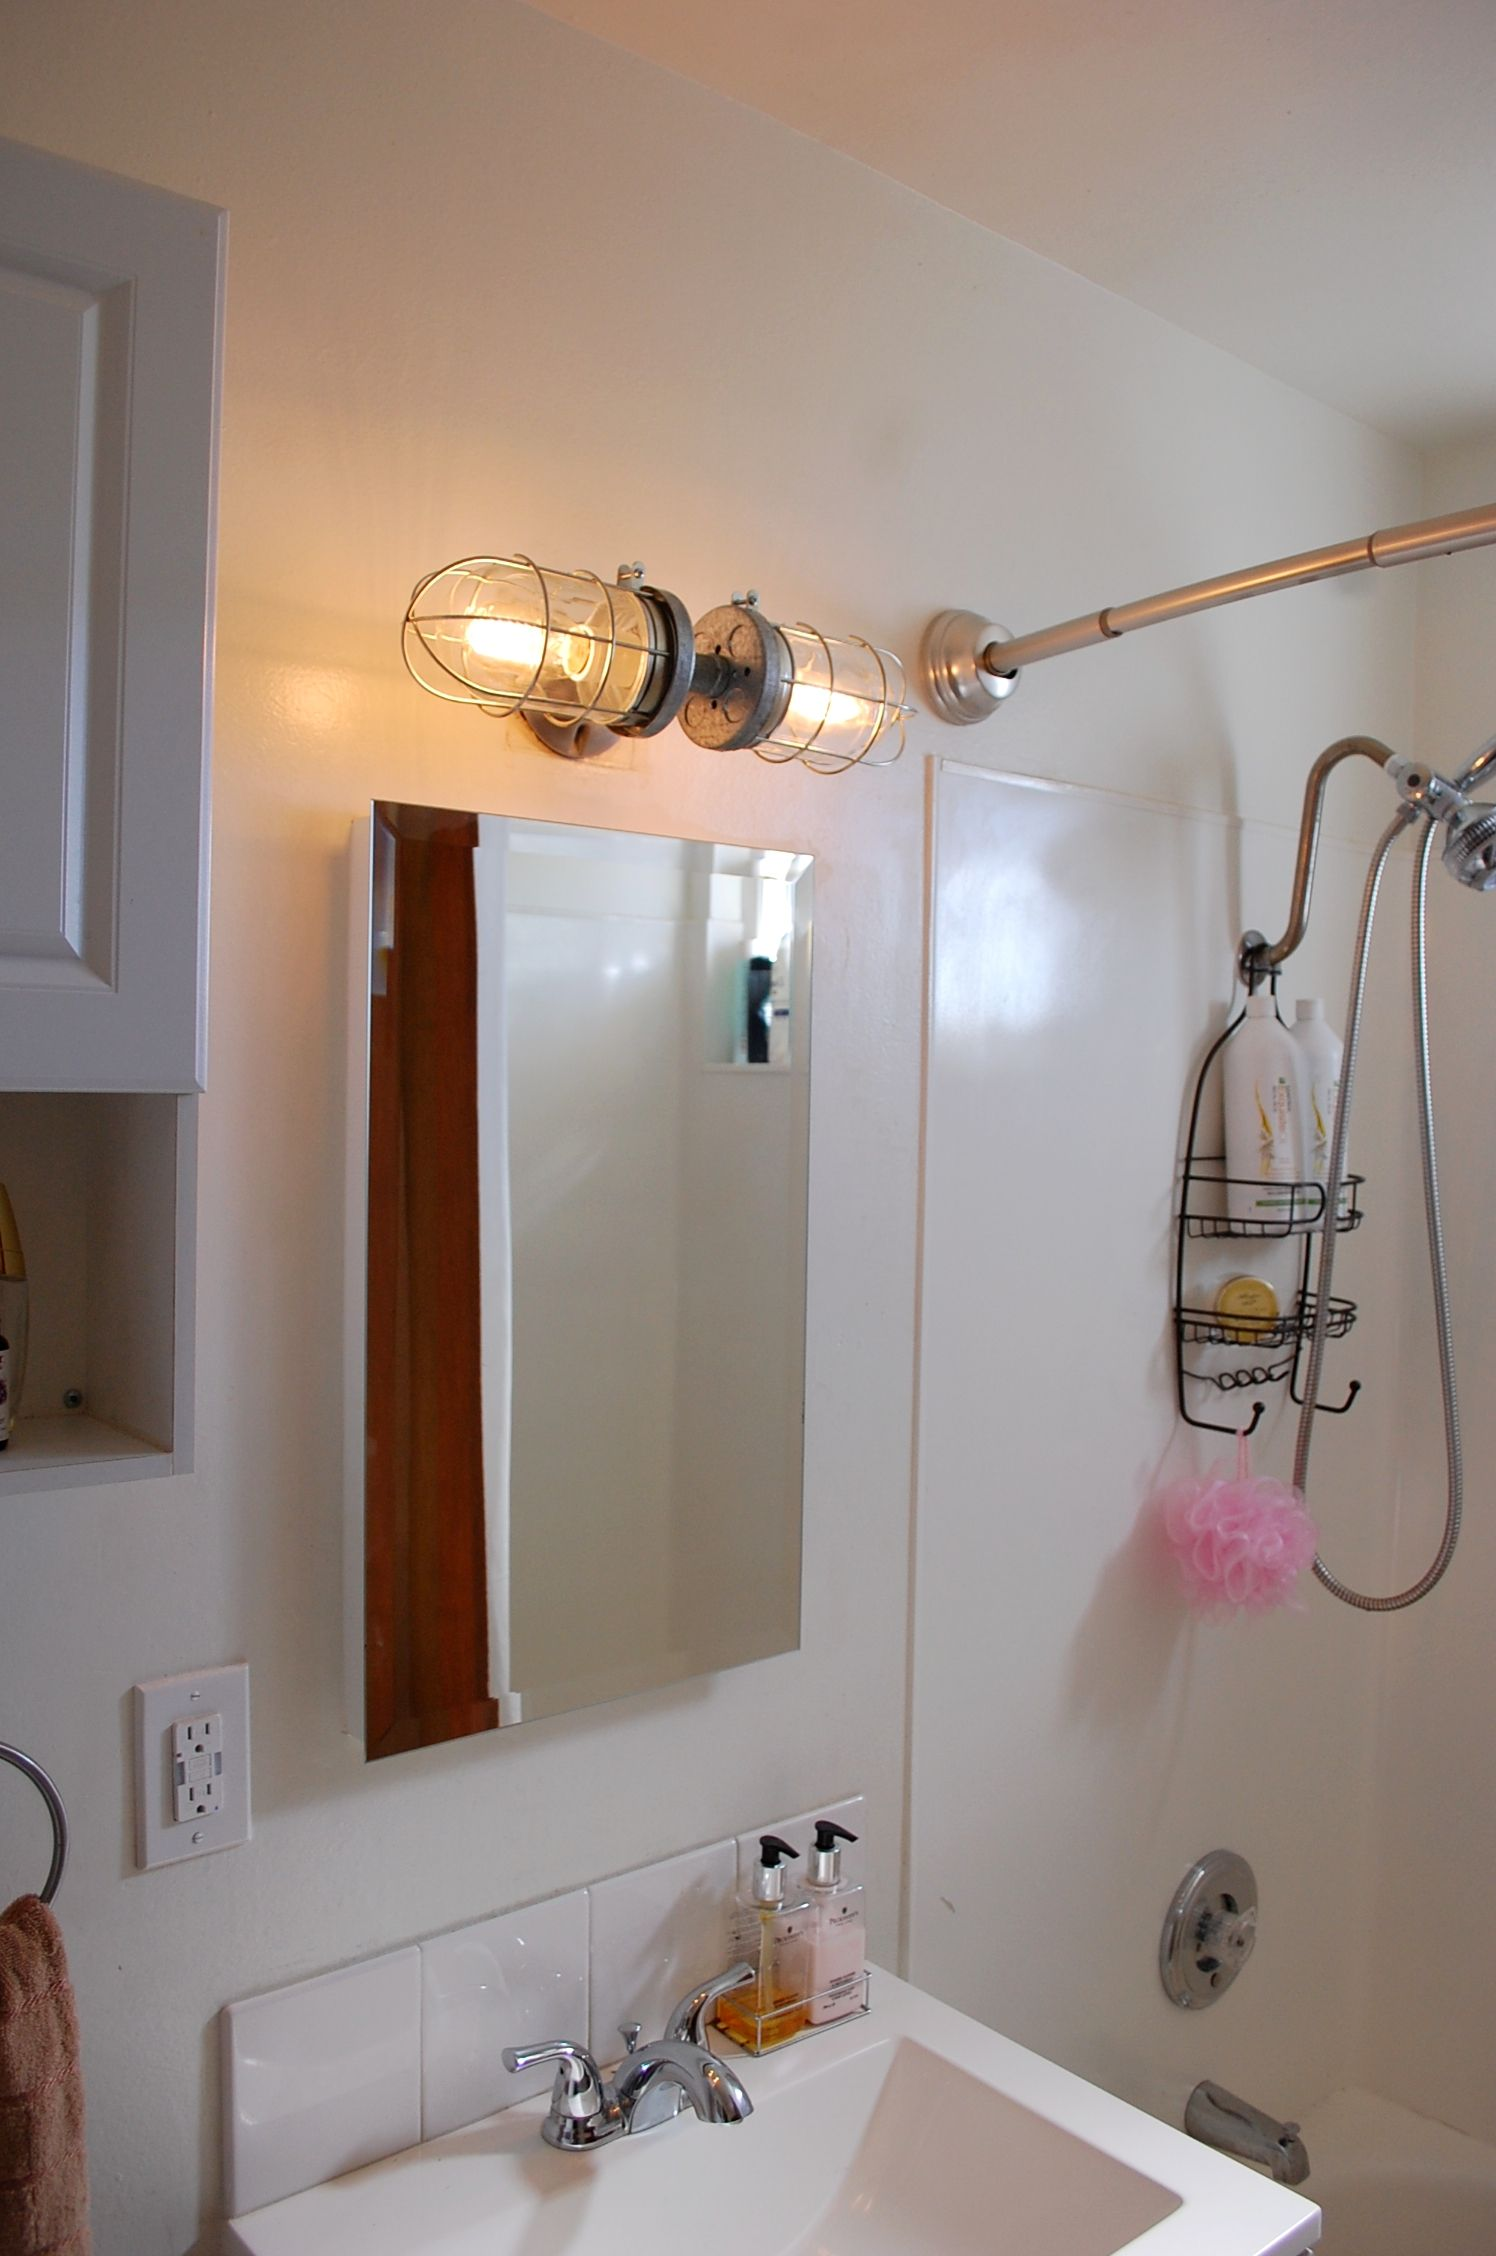 light carnetdebord lighting shelf bathroom me diy vanity pipe industrial vanit